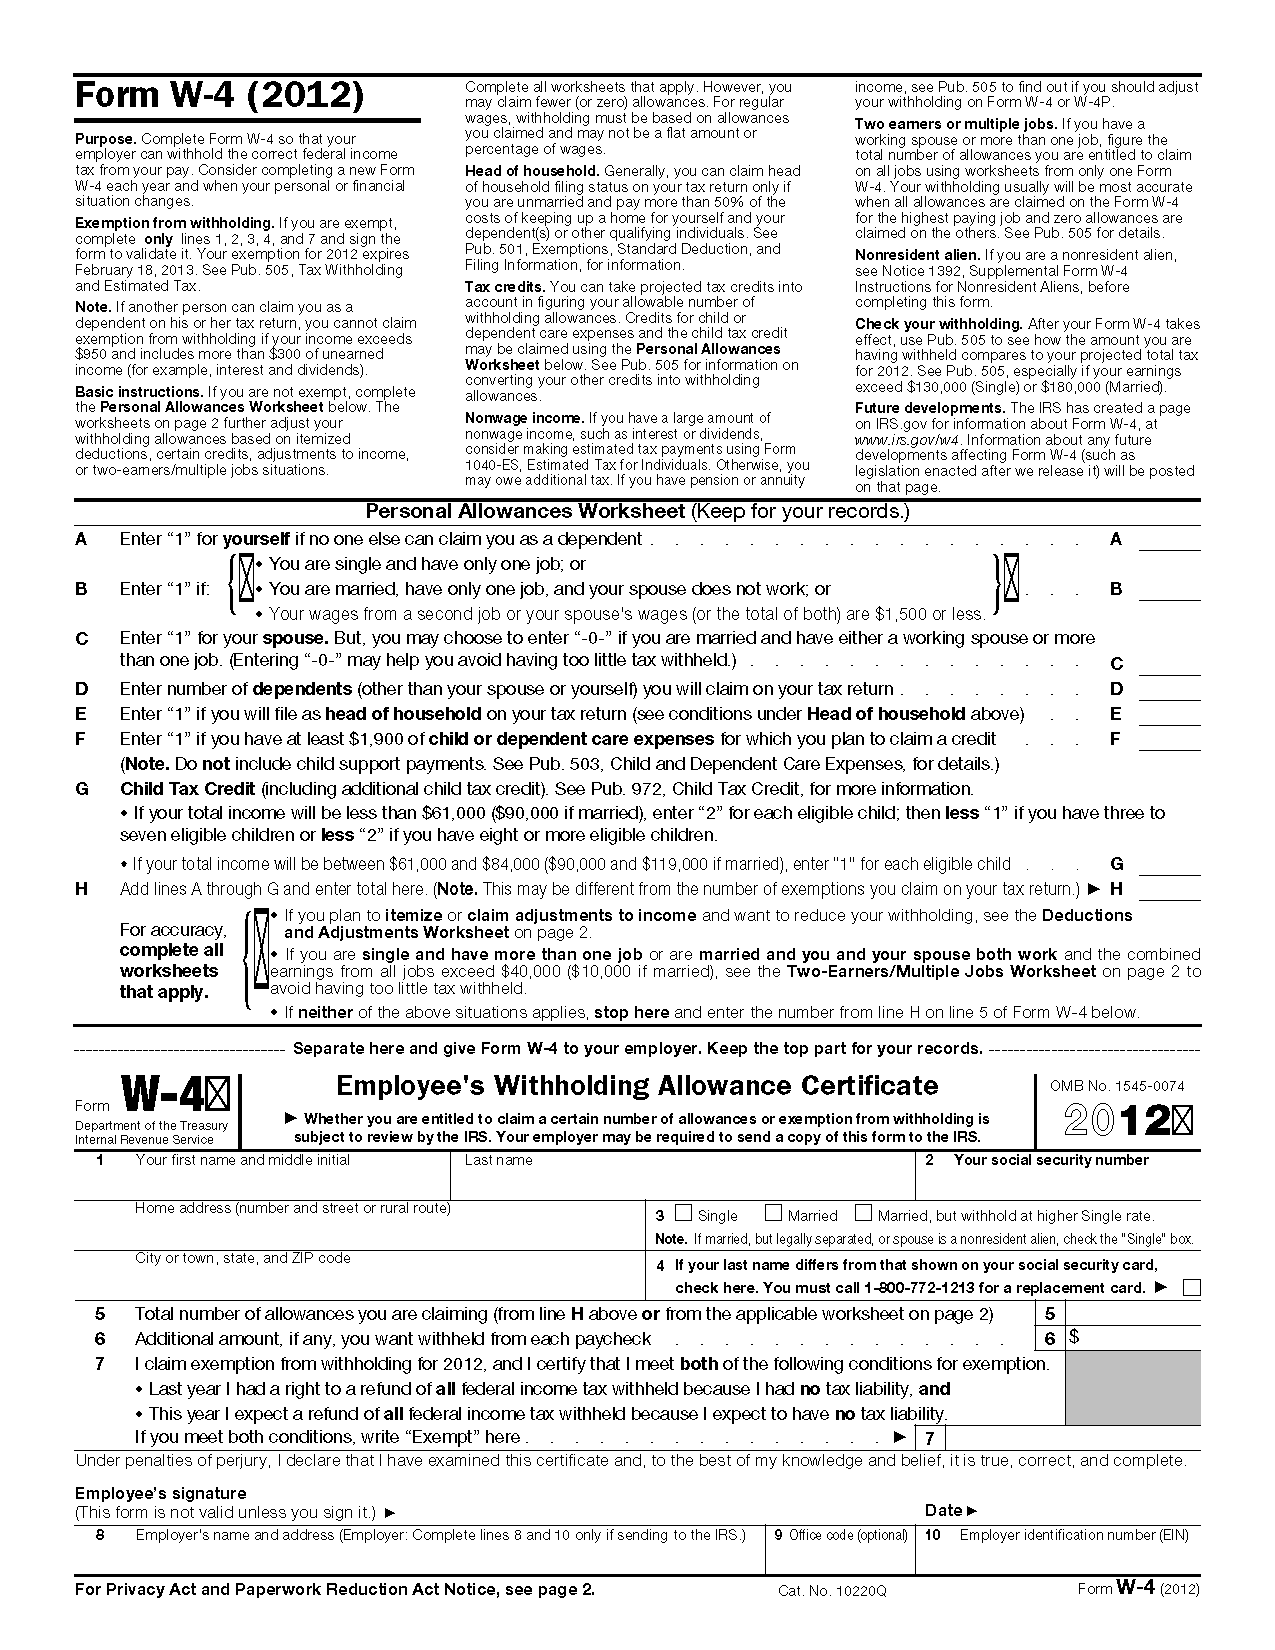 Form W-4 Employee's Withholding Allowance Certificate